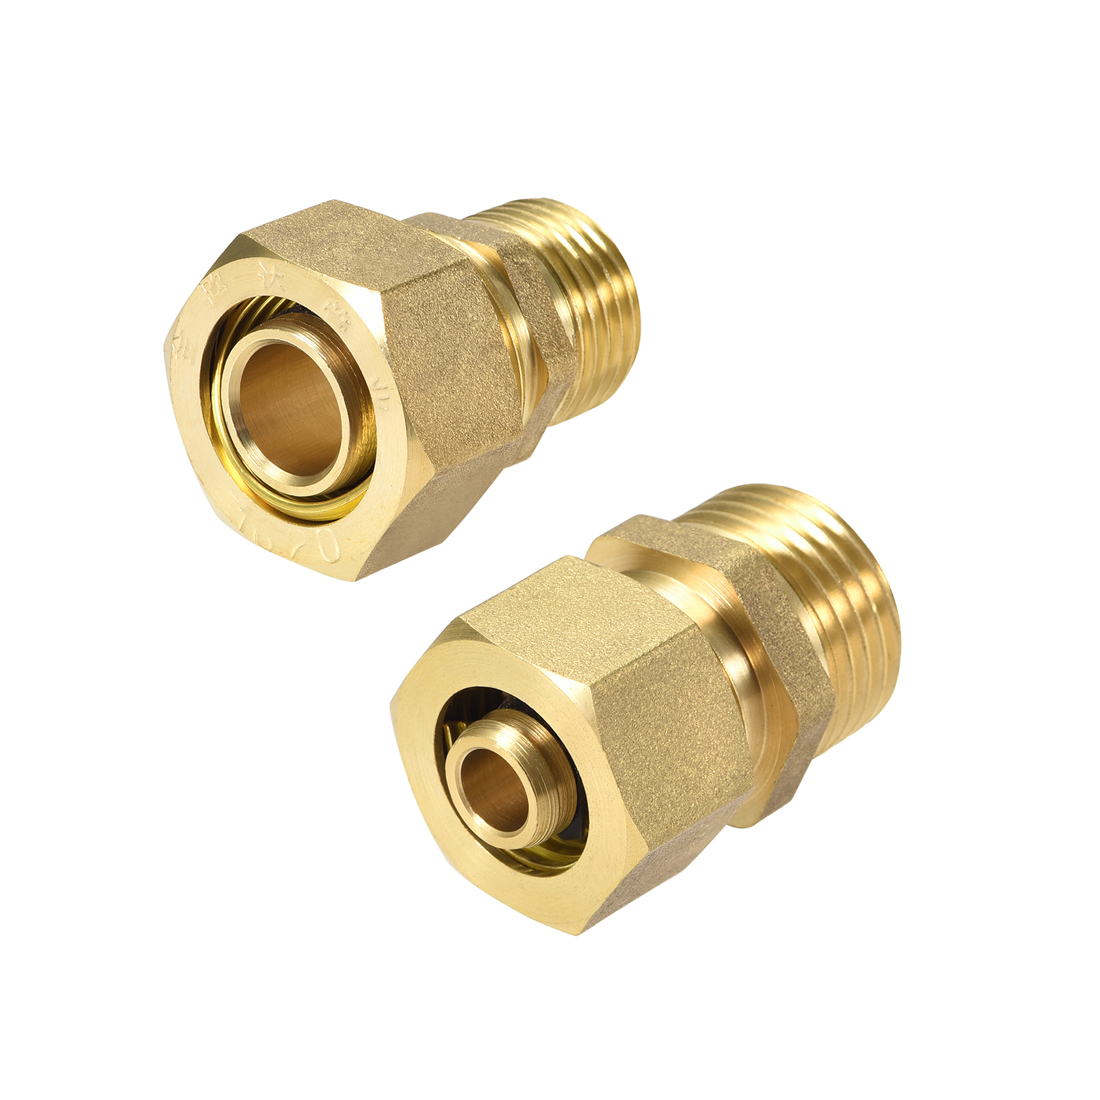 Uxcell 1-3pc G1/2 Male Brass Compression Tube Fitting Connector Adapter 14mm 18mm 20mm Tube OD Gold Tone For Oil Gas Ndustry